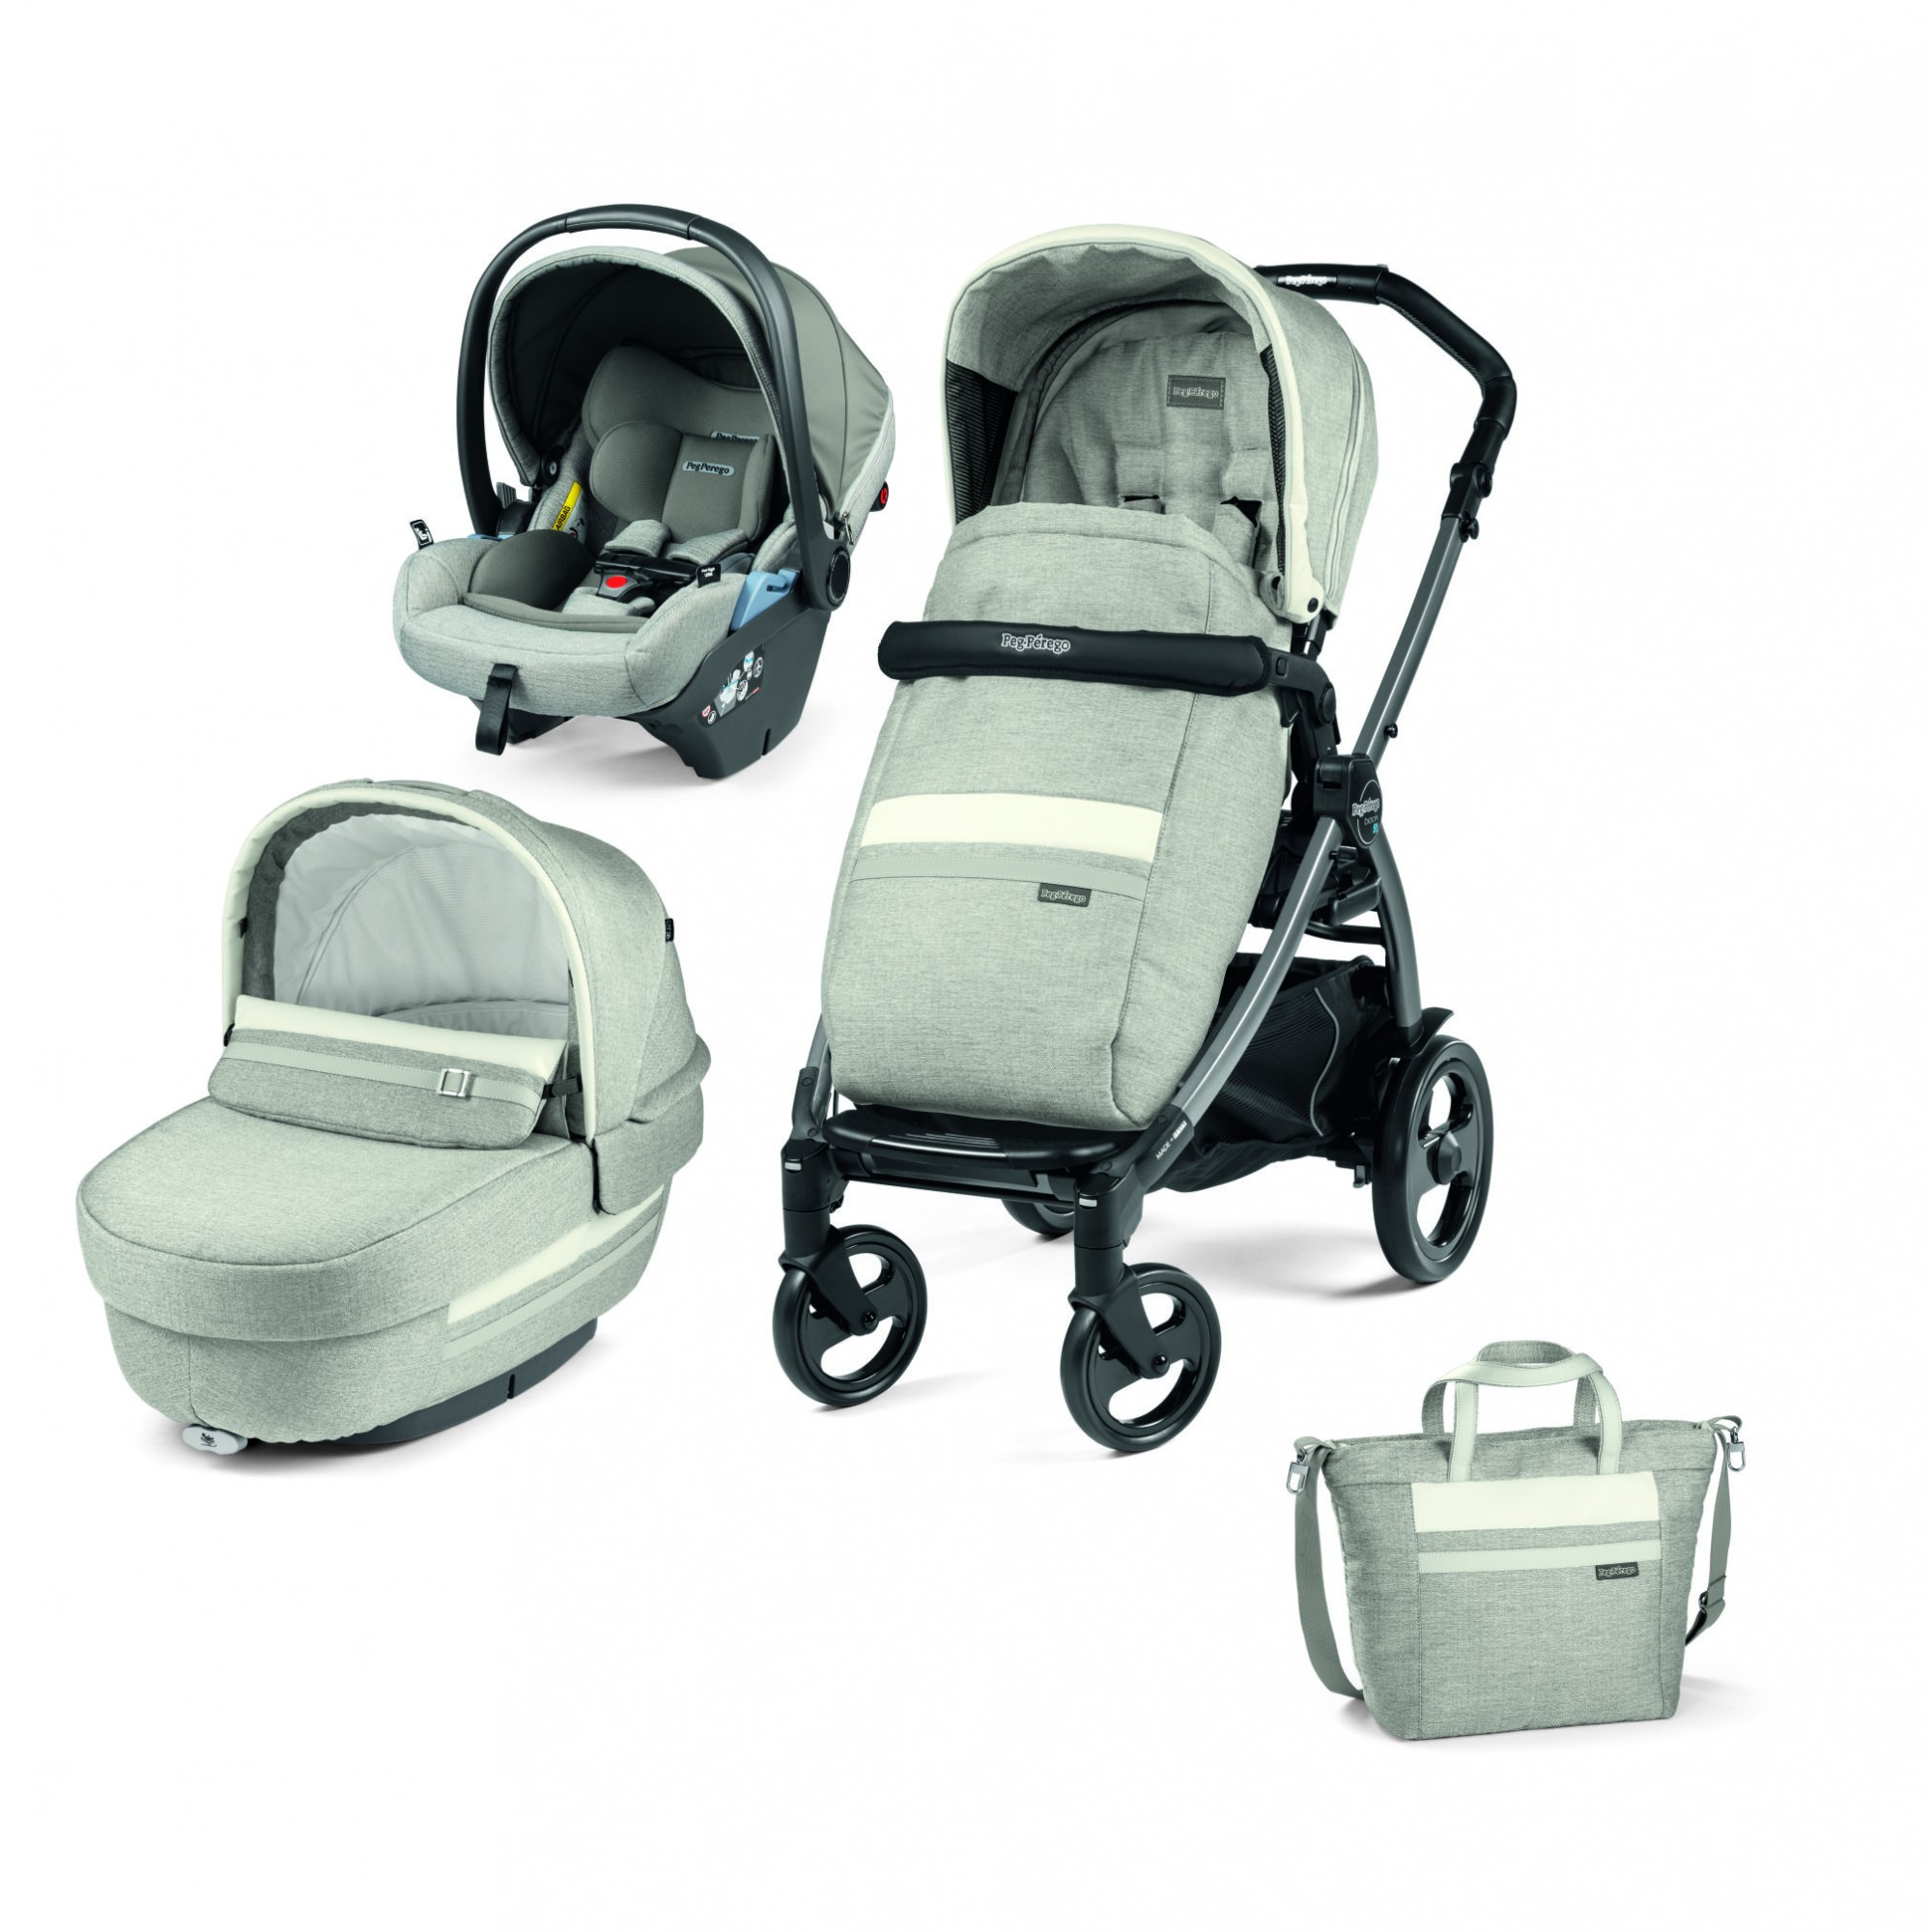 Carucior 3 in 1 Peg Perego, Book 51 Titania, Lounge, Luxe Pure